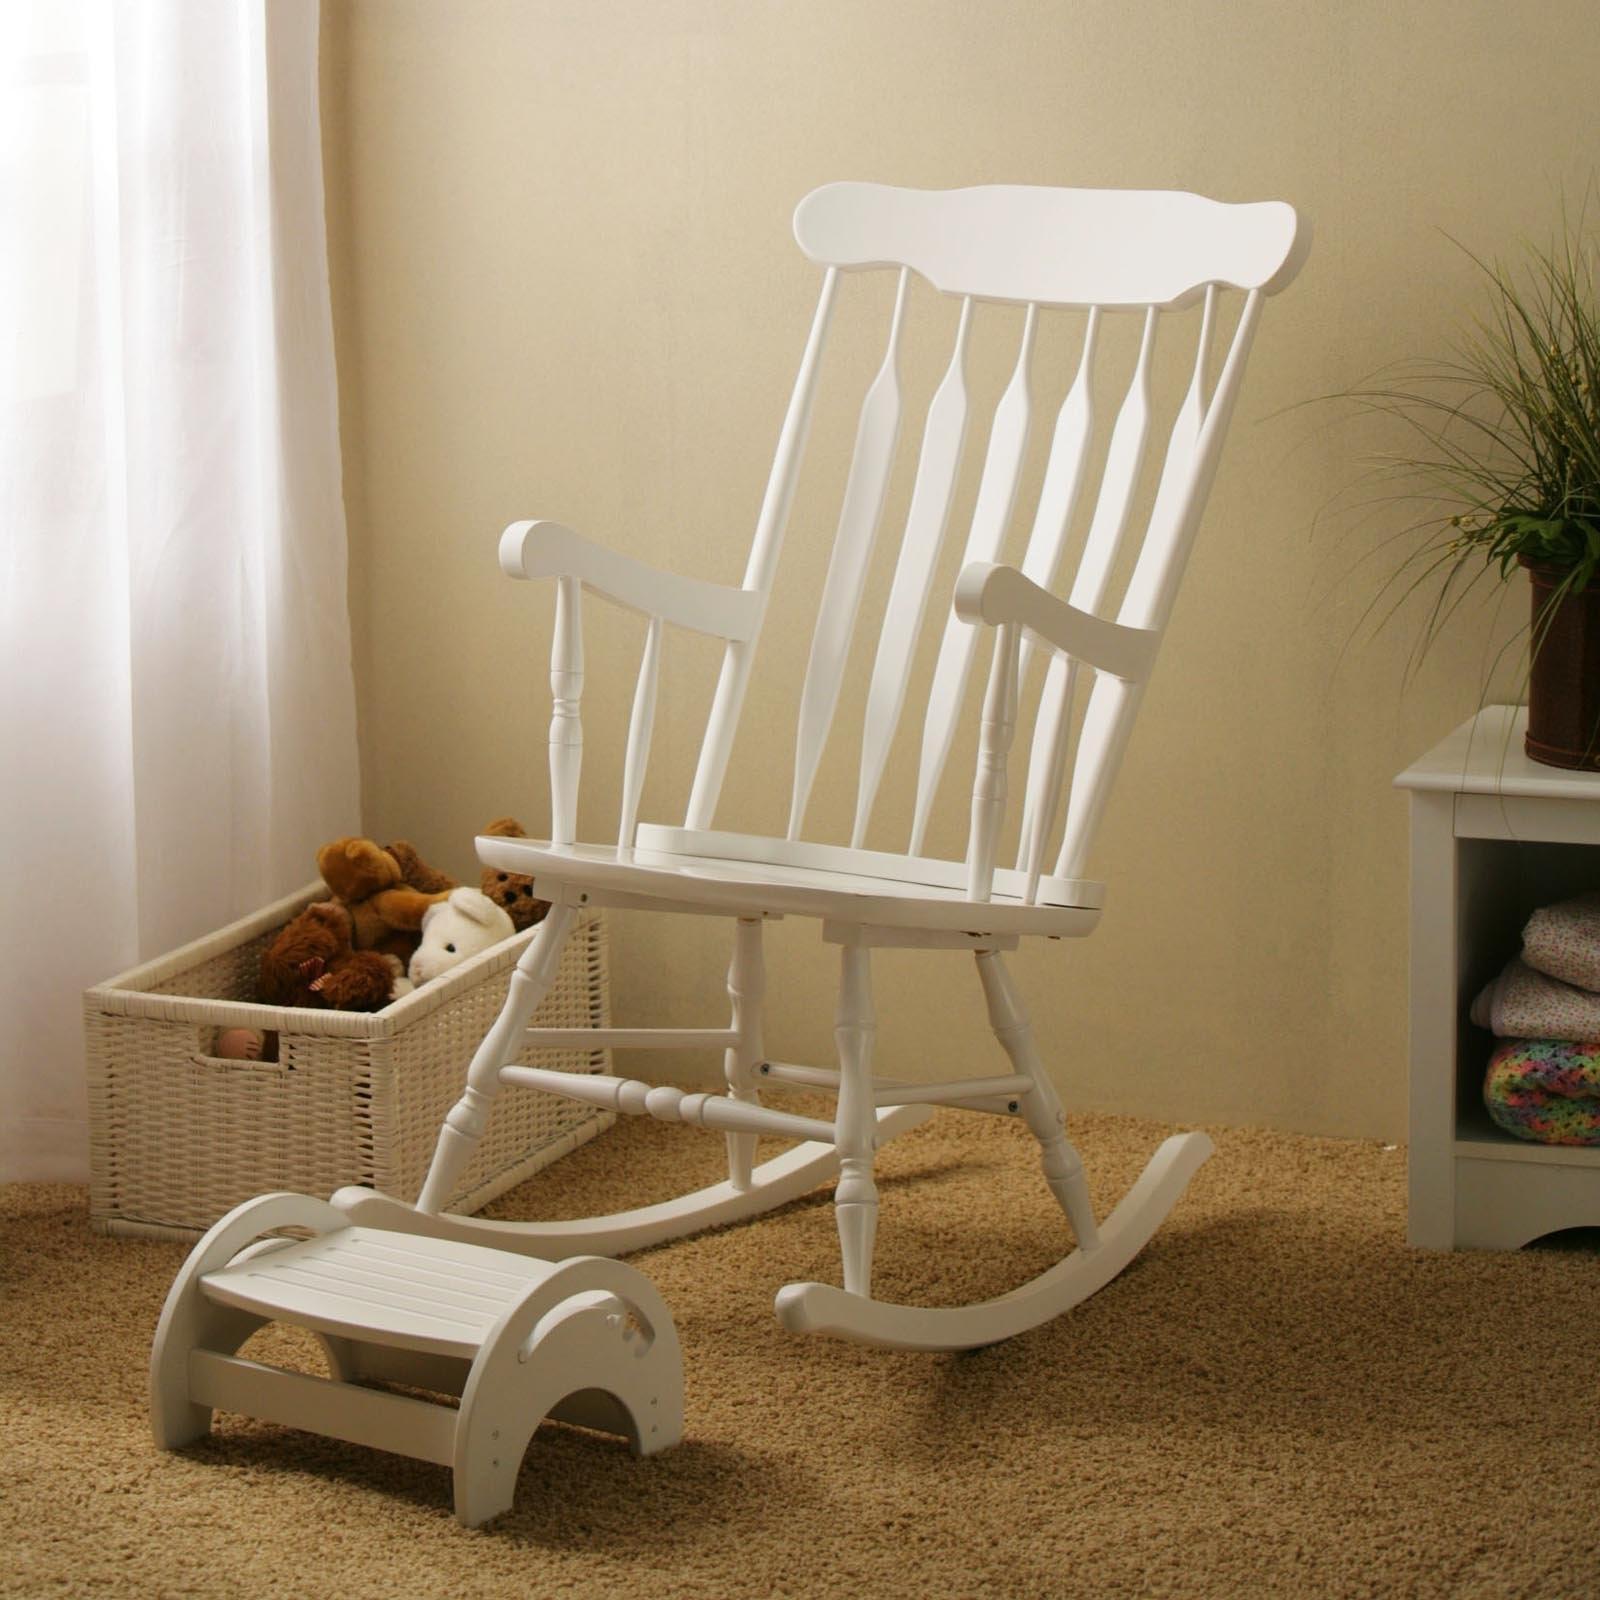 Recent Rocking Furniture – Kevinjohnsonformayor Throughout Rocking Chairs For Small Spaces (View 10 of 15)